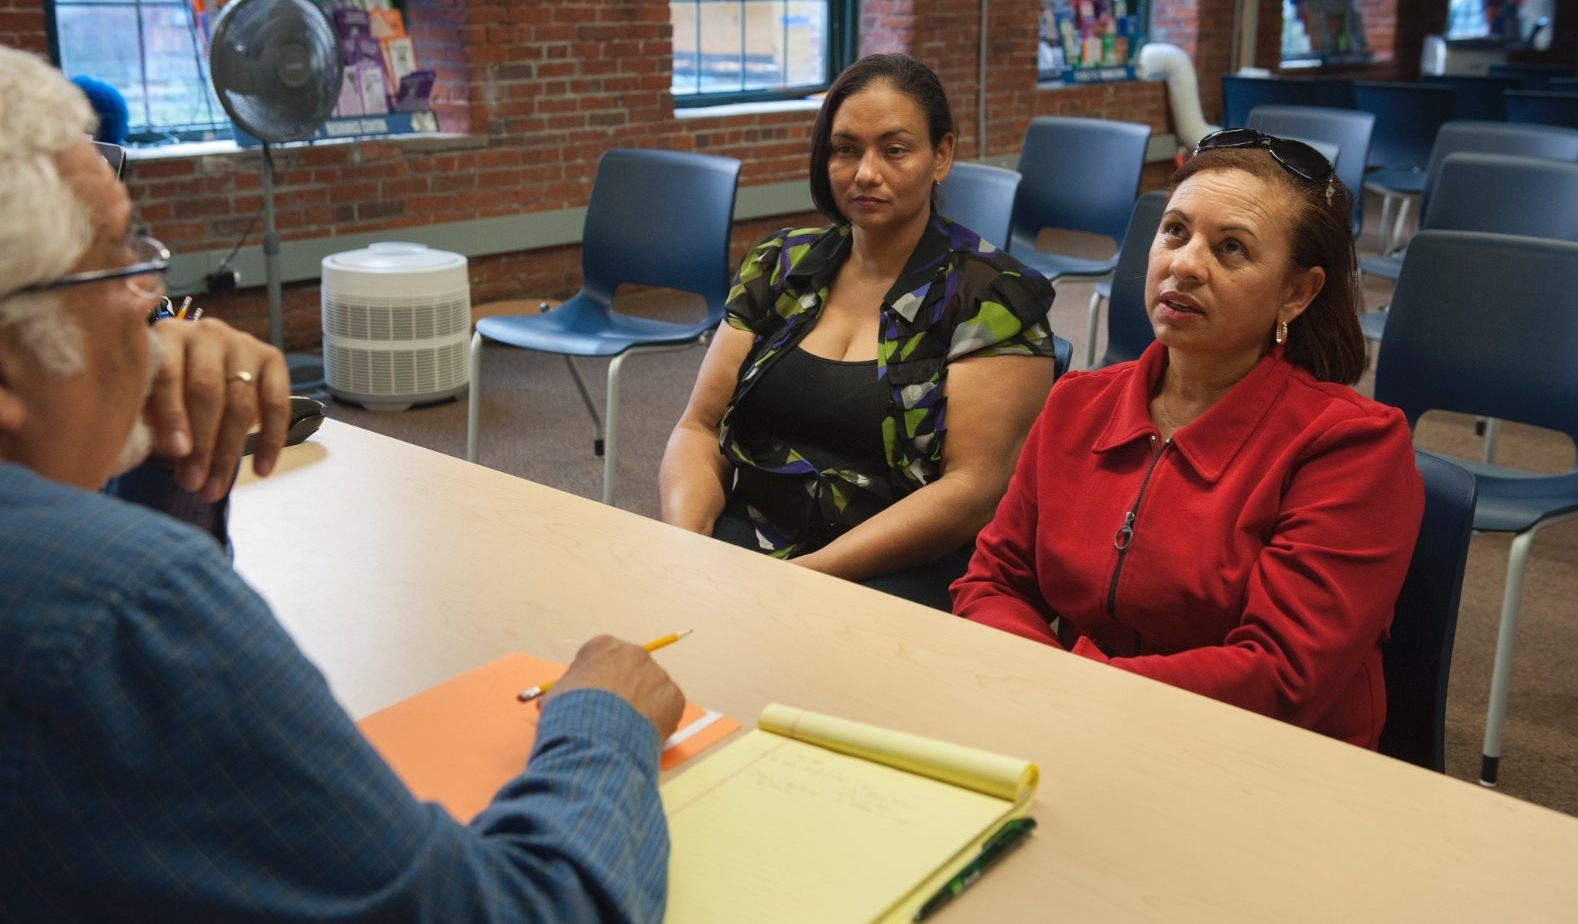 A school counselor meets with parents.